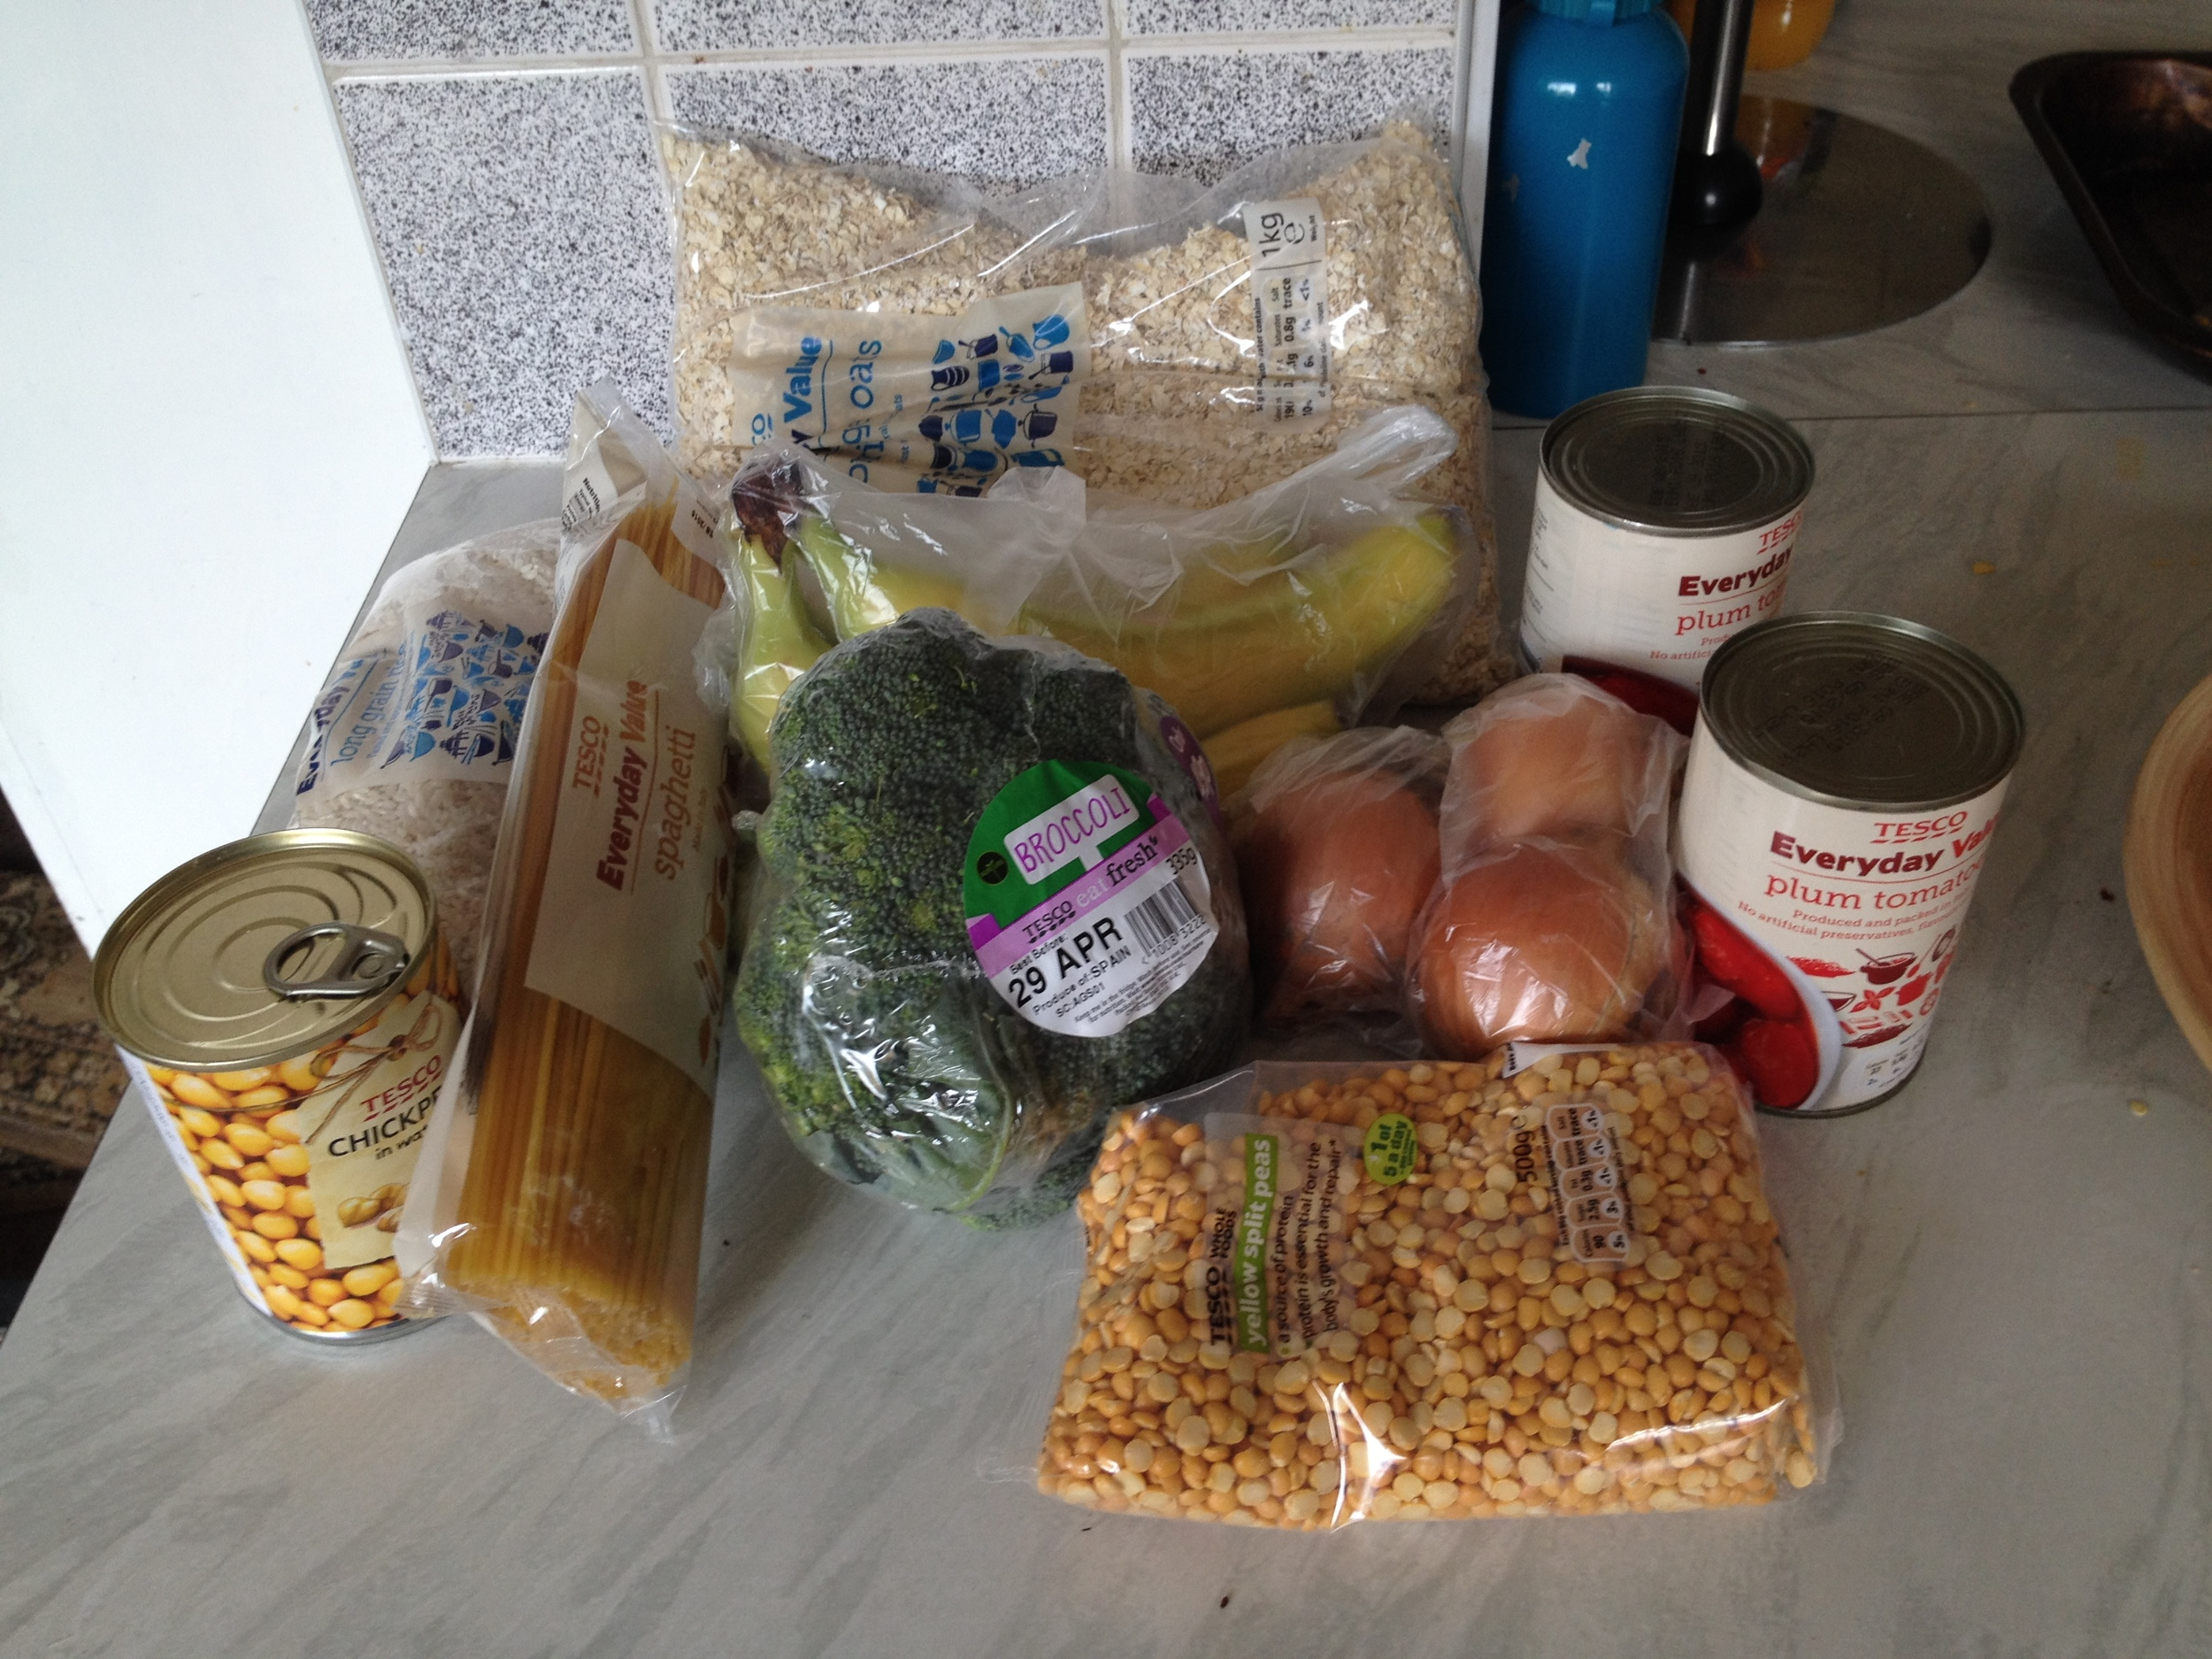 My food for the week